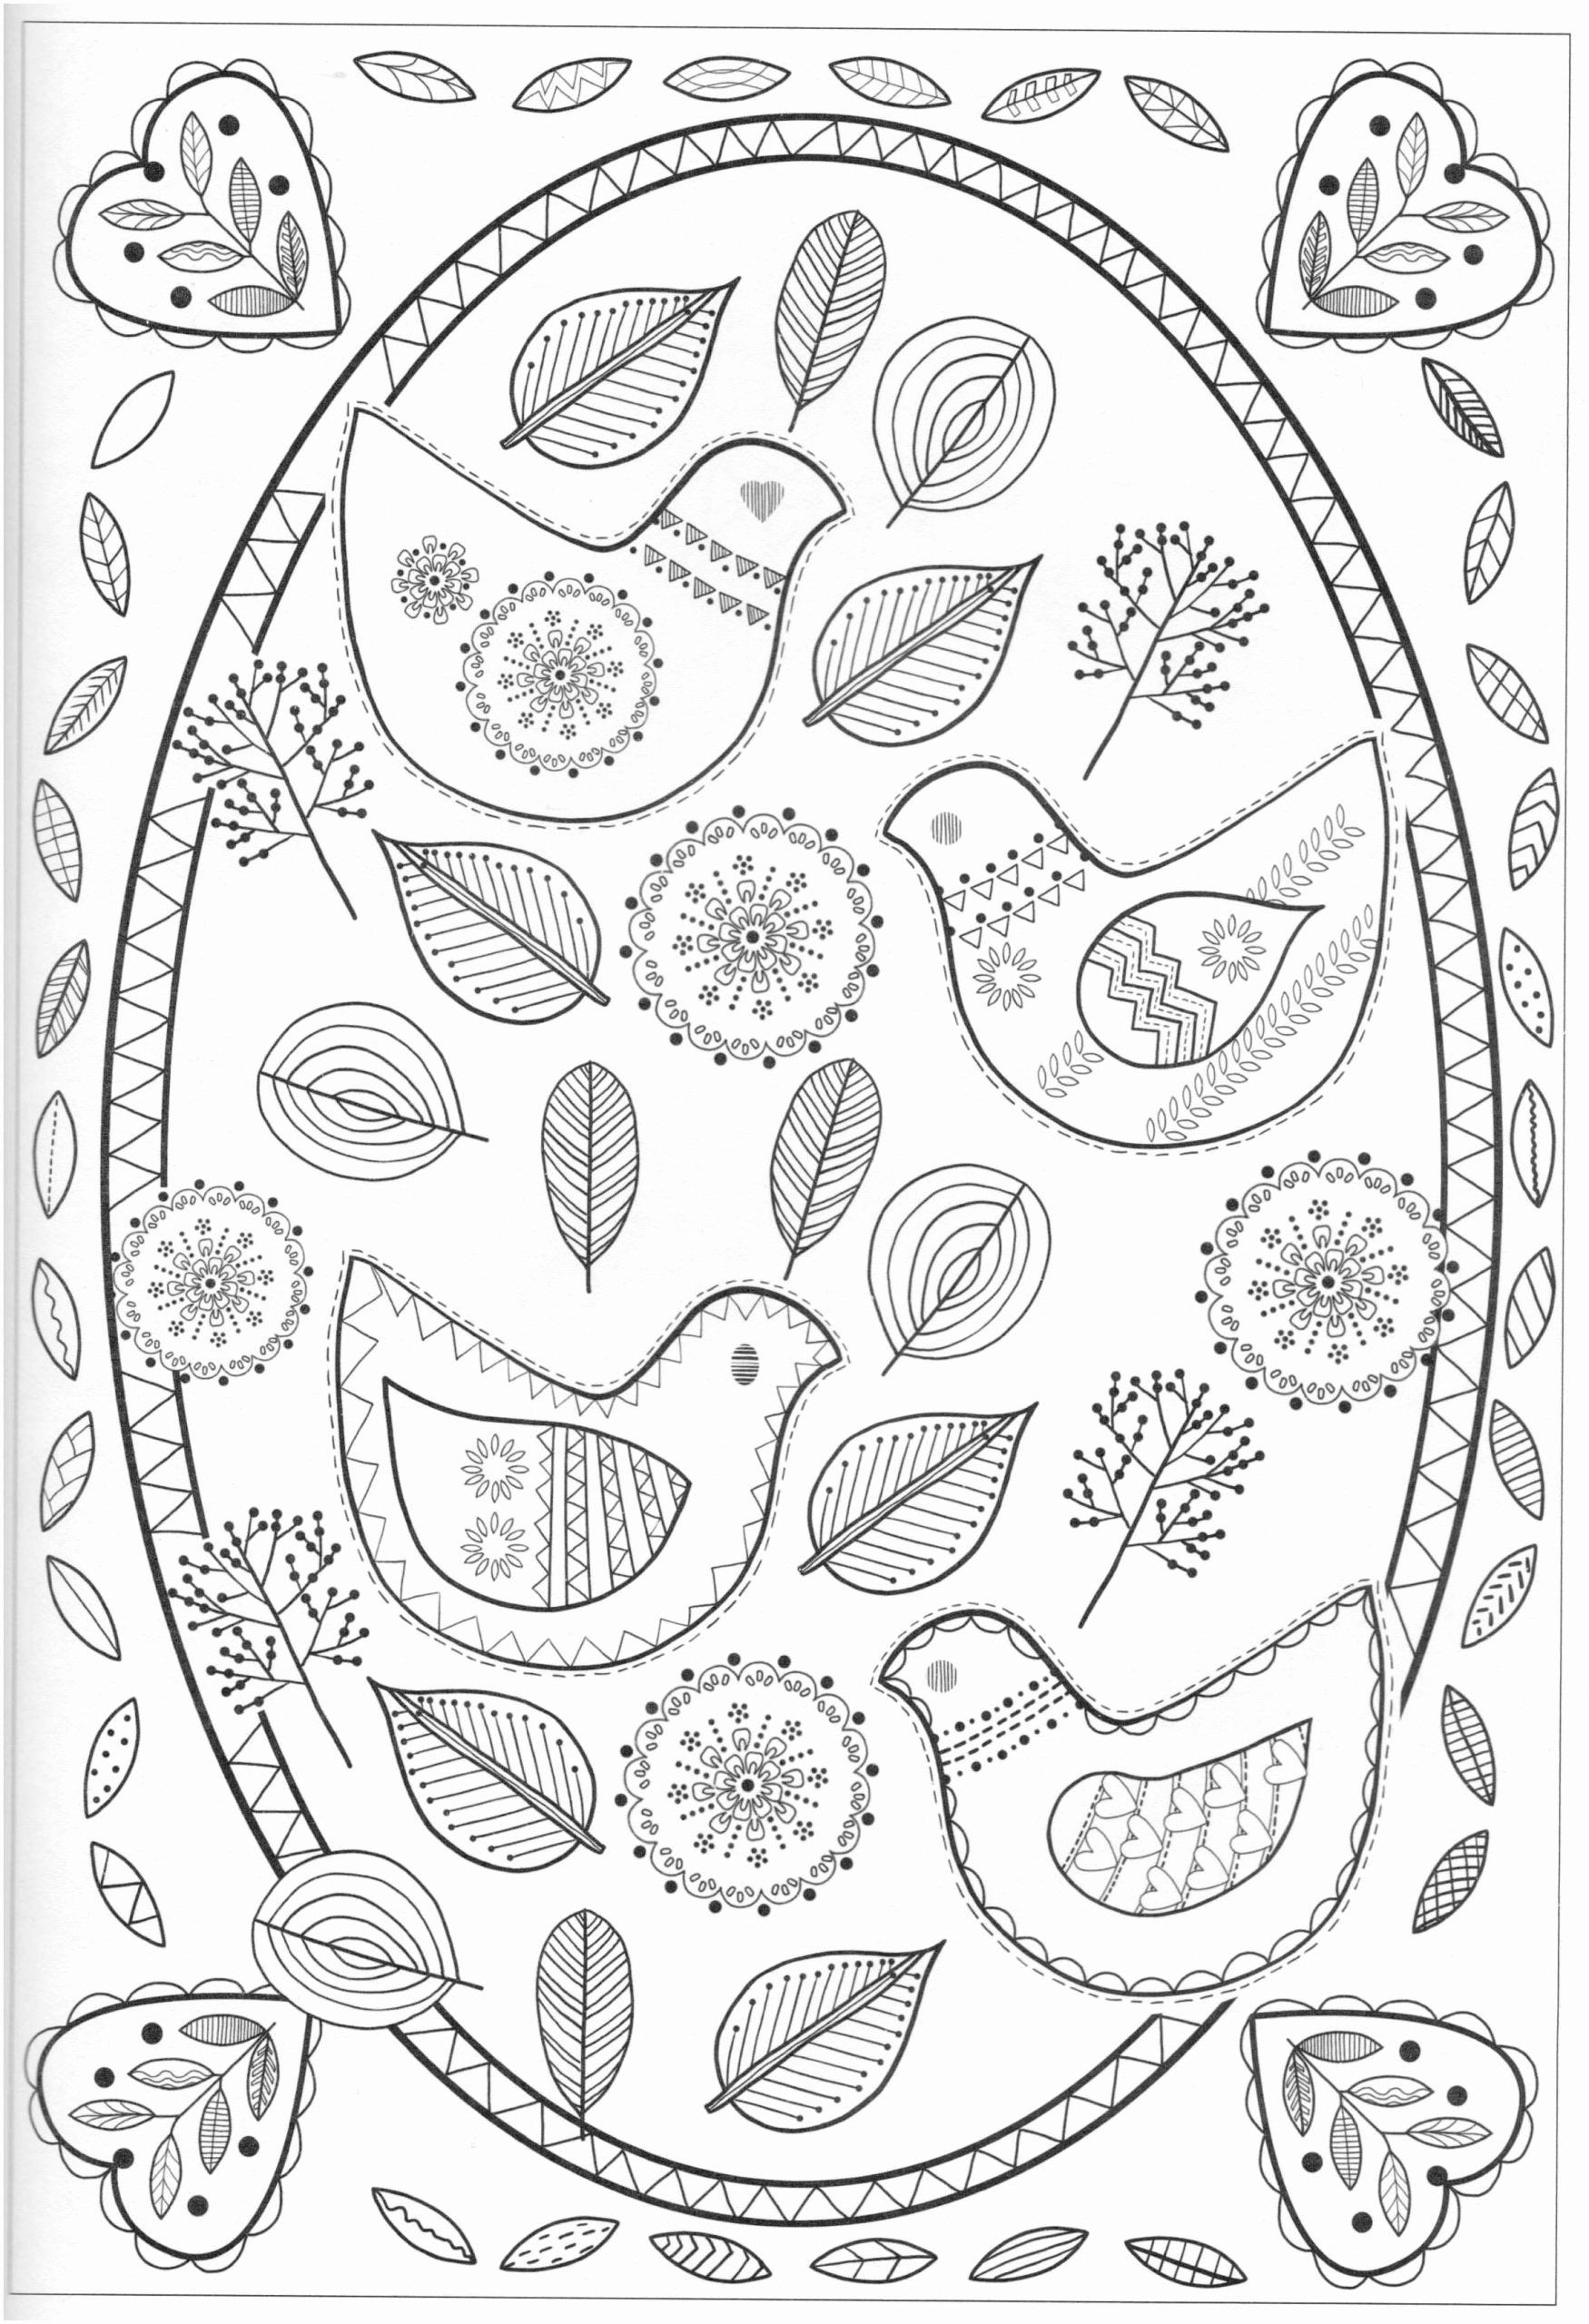 Best Coloring Books For Toddlers Awesome Coloring Pages Best Coloring Books Pages For Kids To Love Coloring Pages Mandala Coloring Books Designs Coloring Books